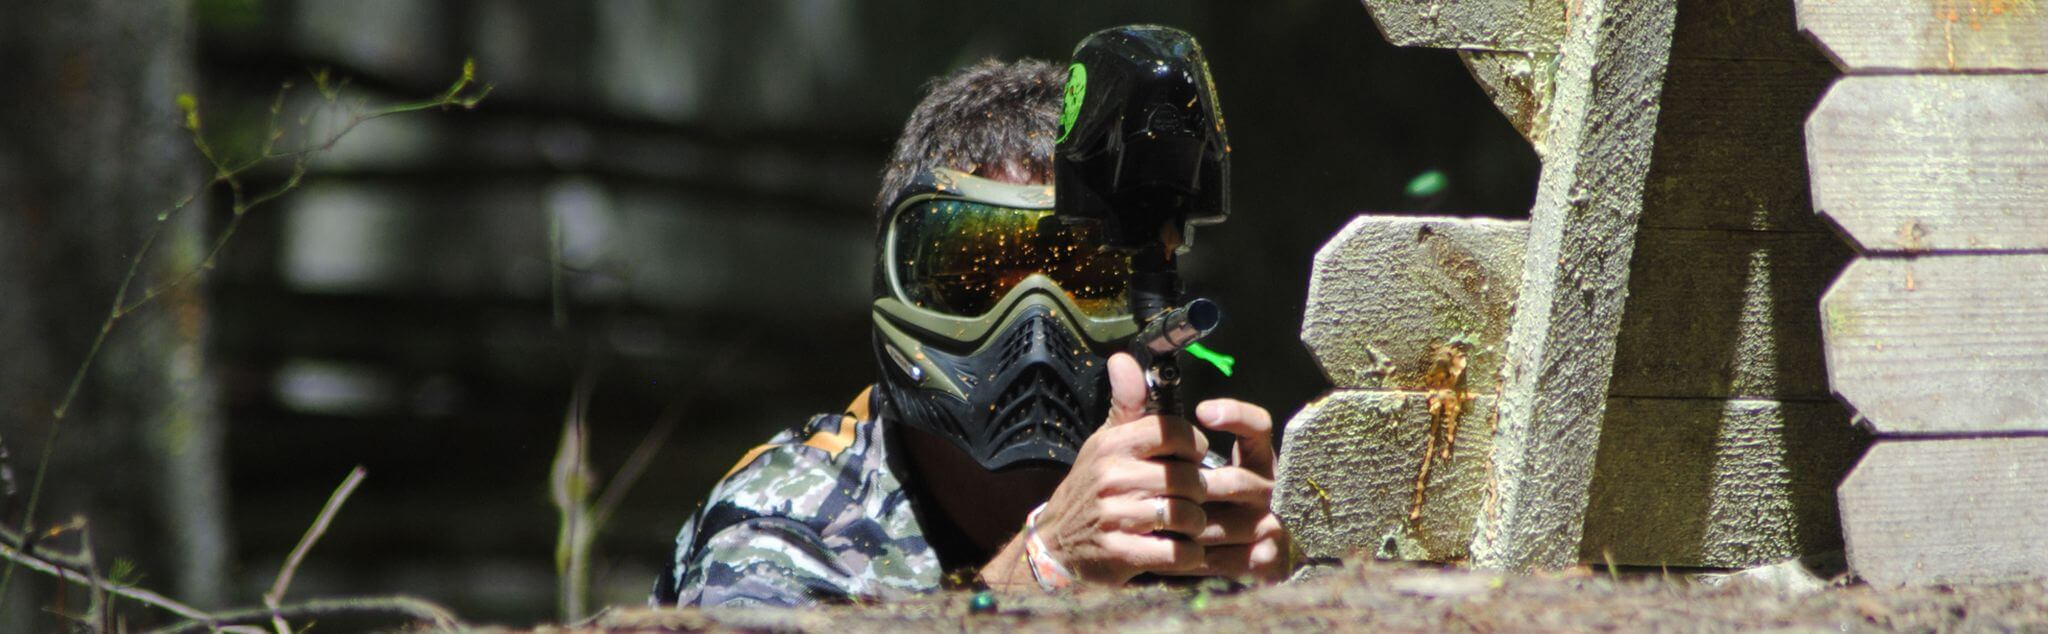 Paintball en San Lorenzo De El Escorial